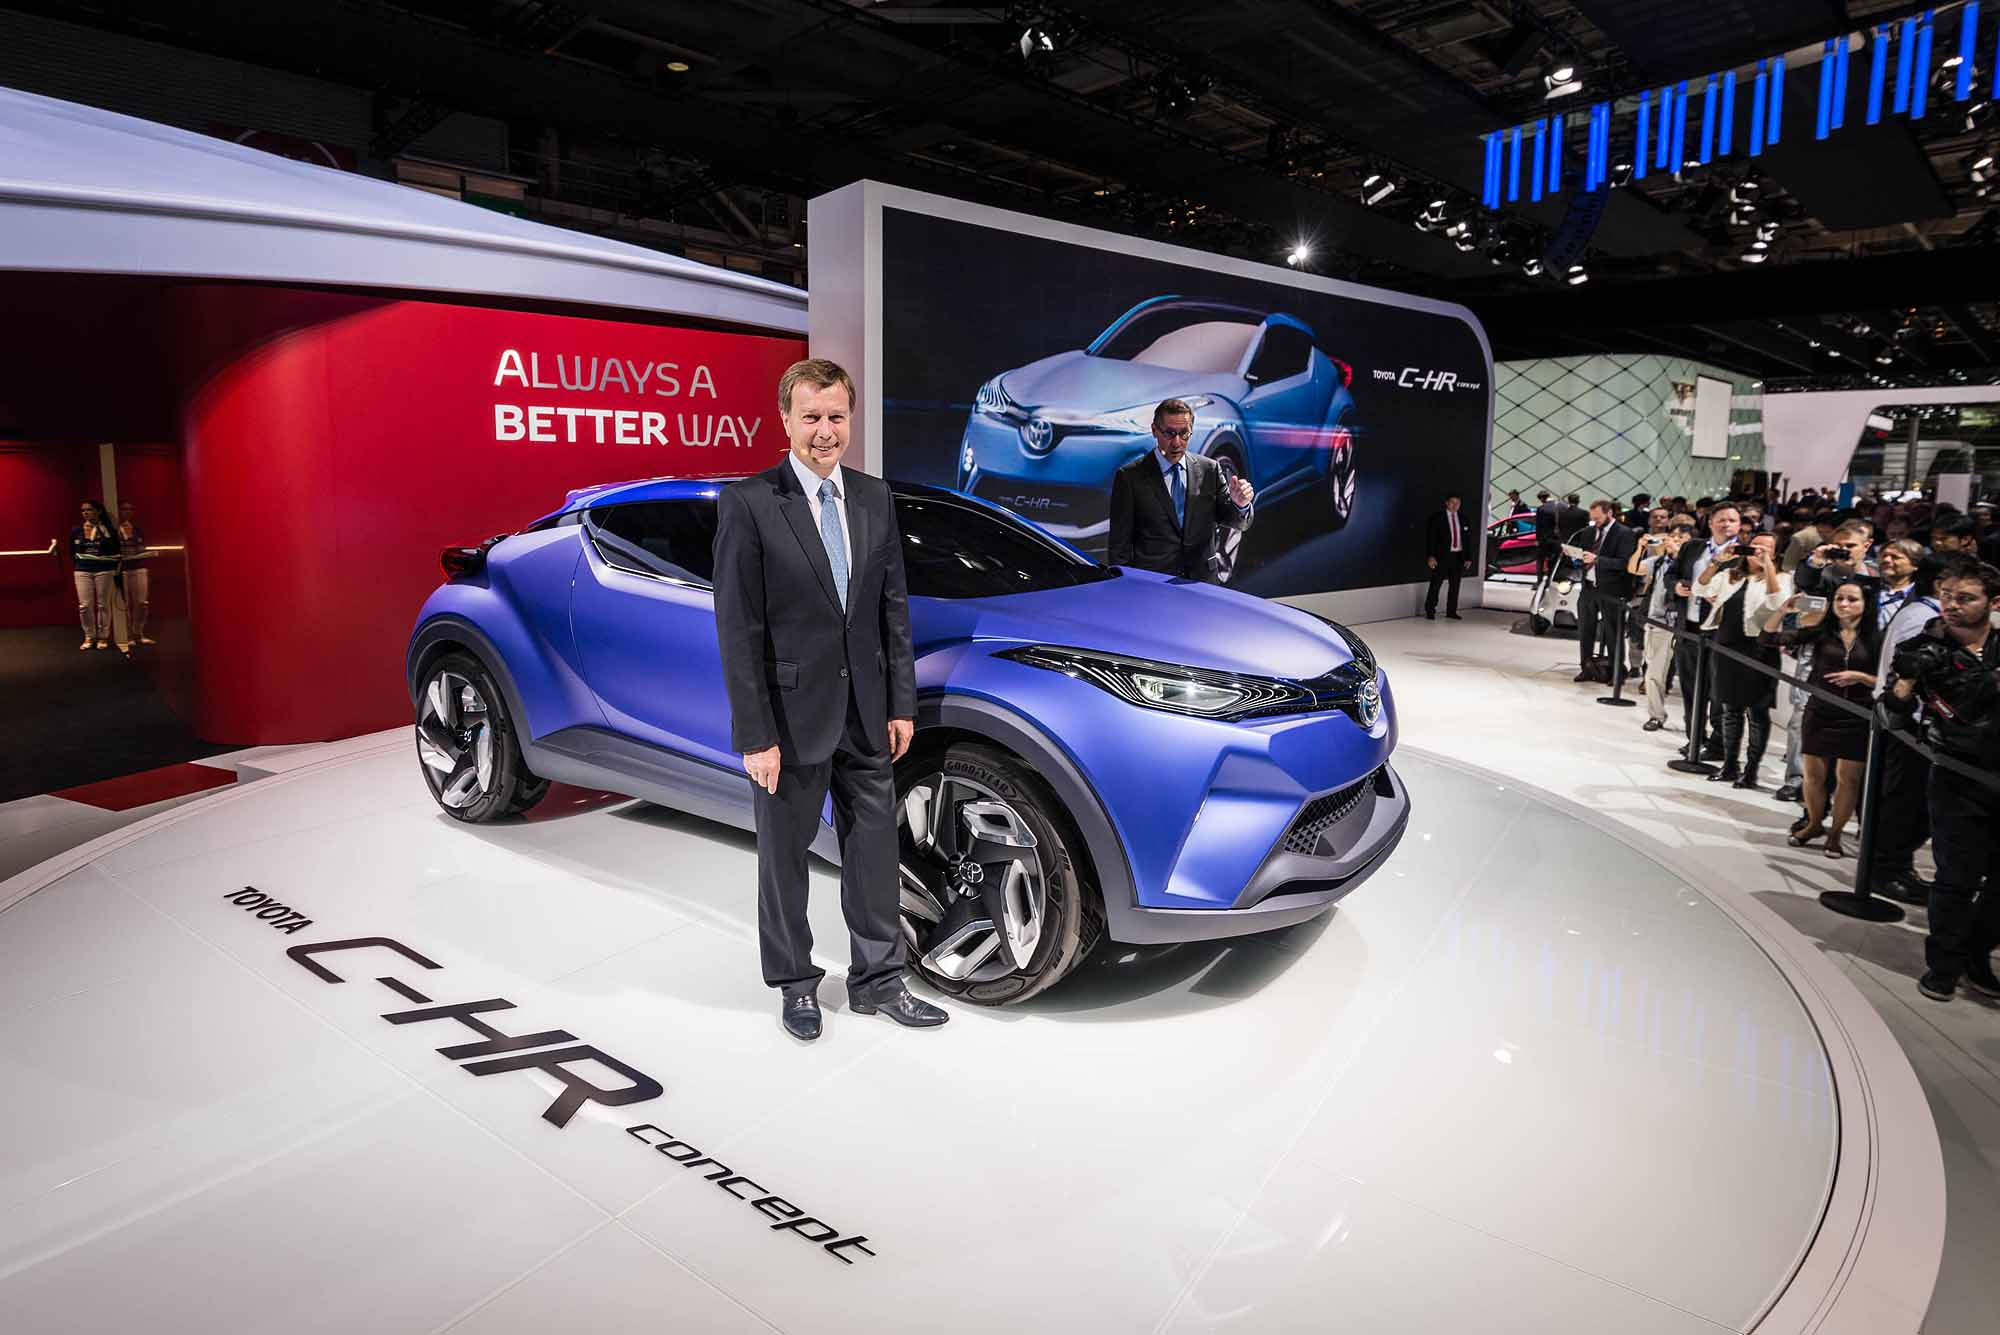 new toyota c hr concept hits the stage in paris japanese car auctions integrity exports. Black Bedroom Furniture Sets. Home Design Ideas